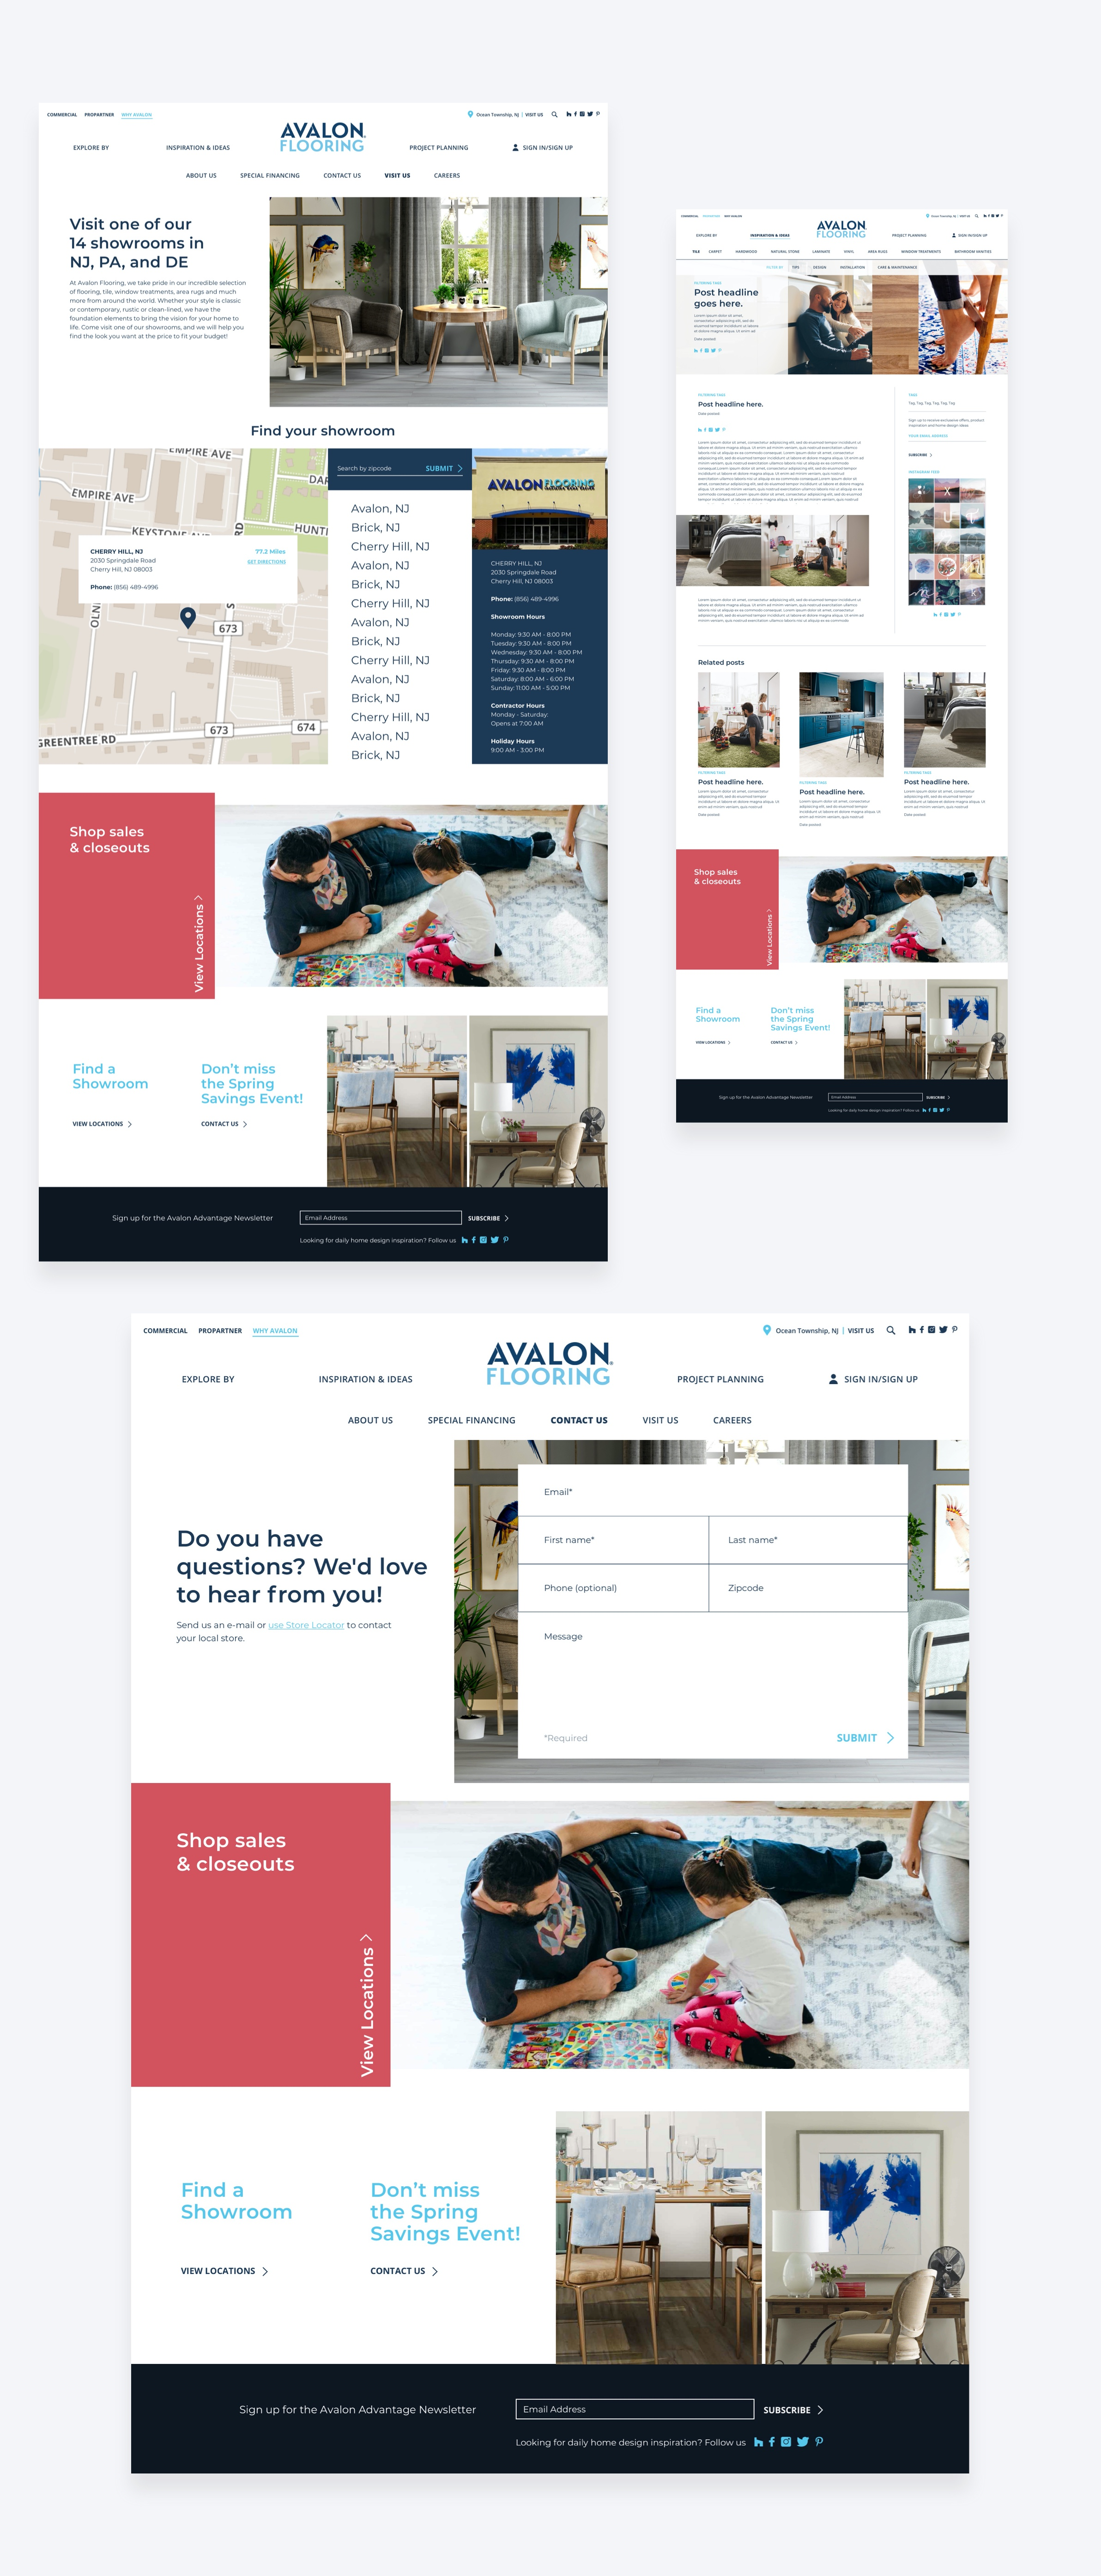 High-fidelity final design of the Avalon Flooring locations page